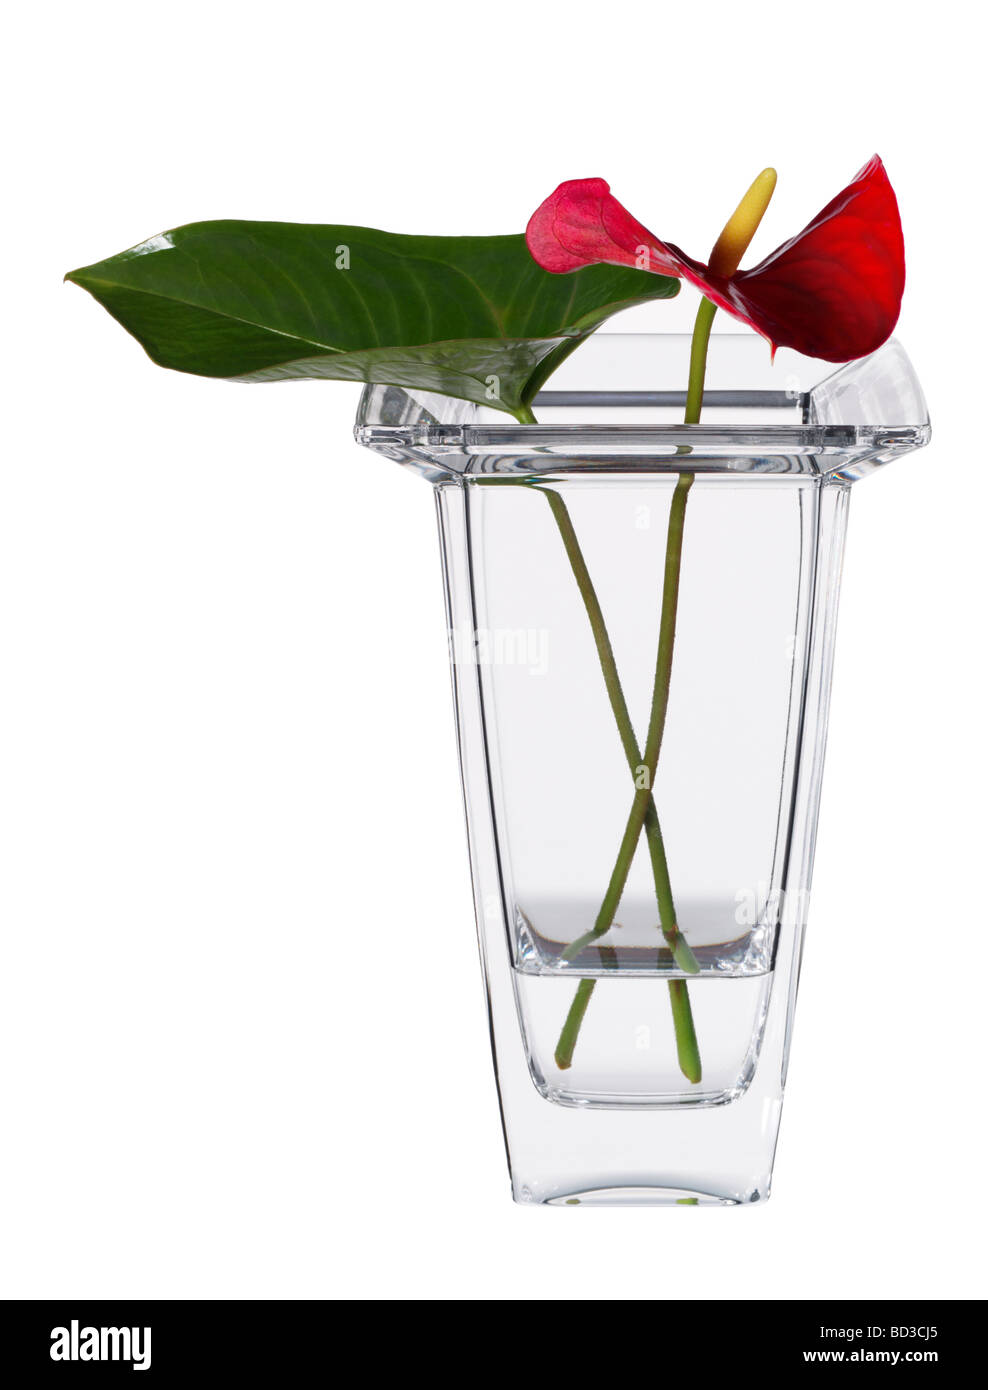 Cut flowers in a vase - Stock Image